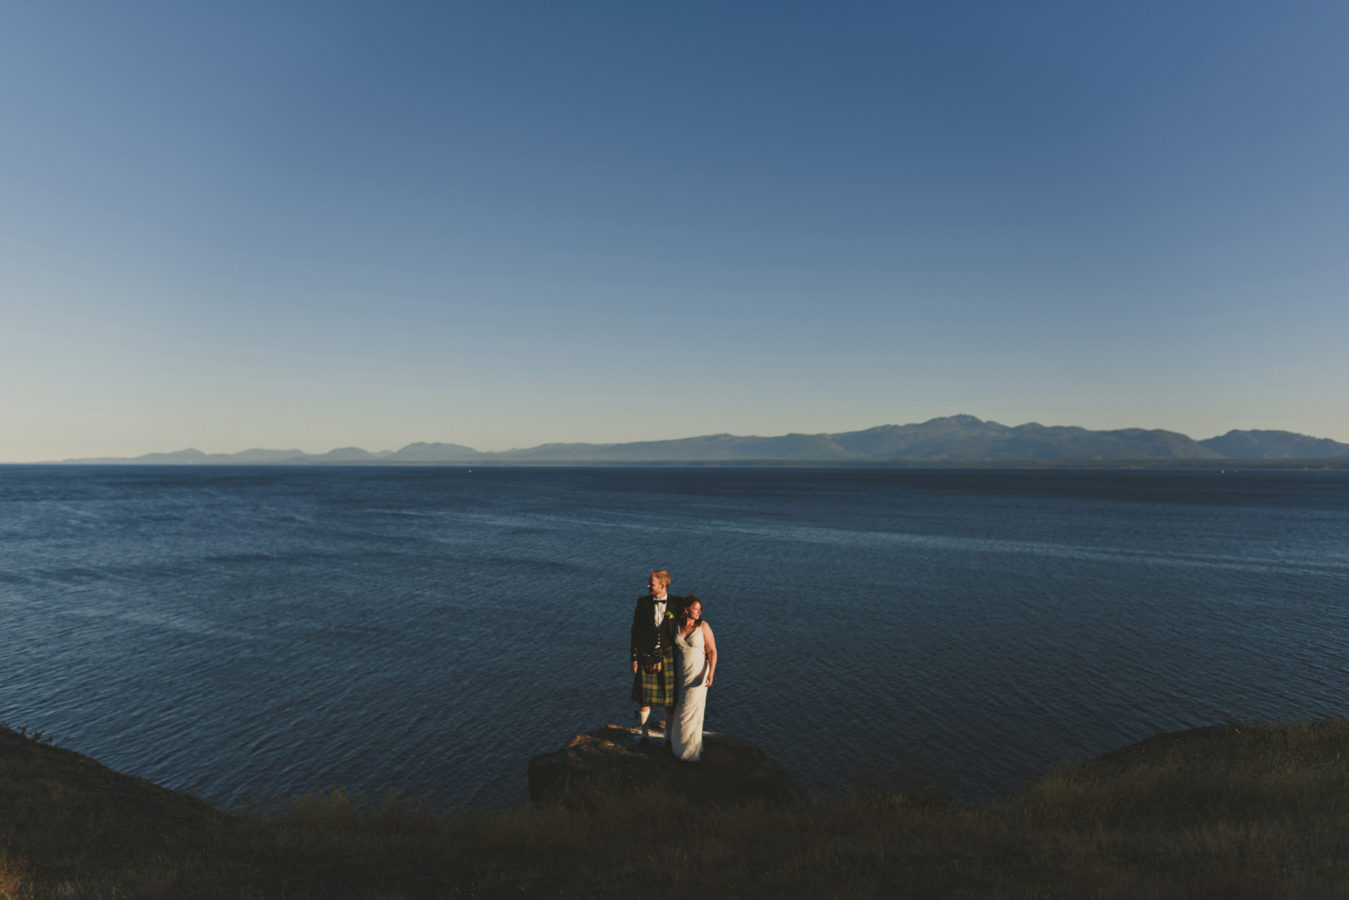 bride and groom on a rocky outcropping on a cliff overlooking the ocean